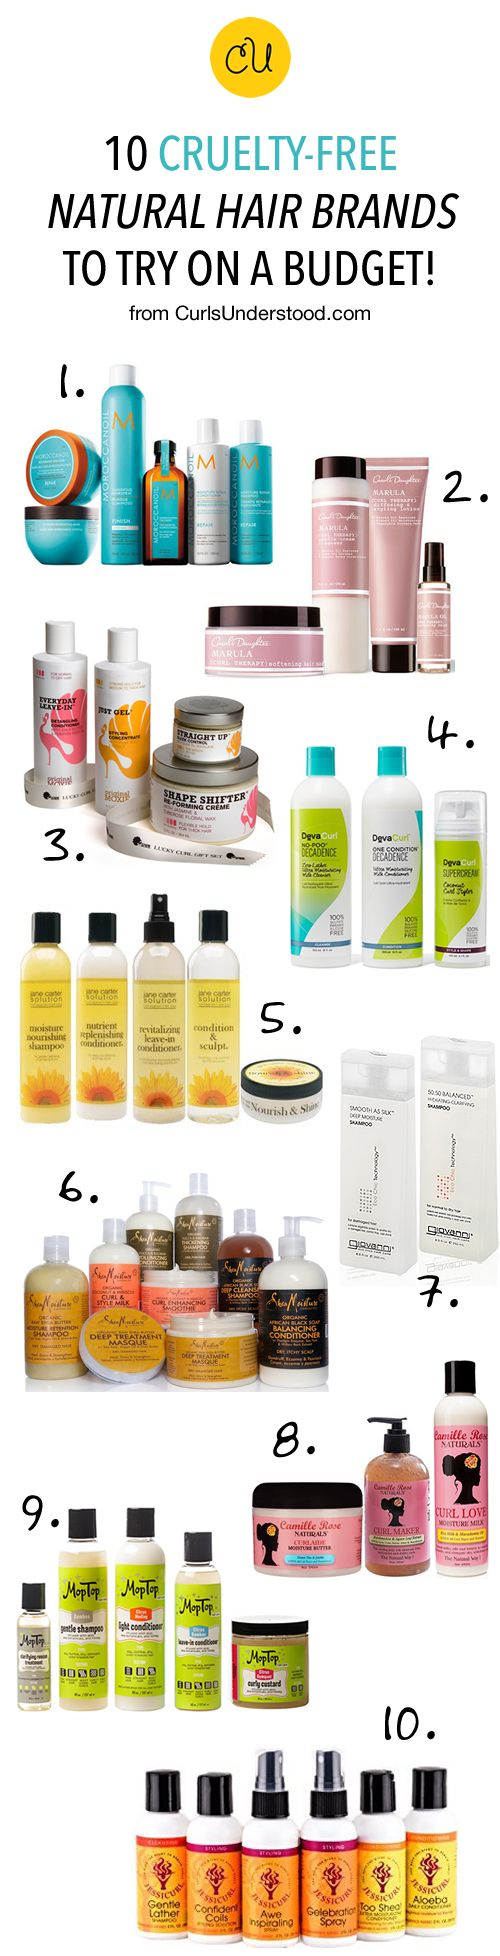 There's nothing like ethically conscious products! Learn how you can try all 10 brands for less: http://curlsunderstood.com/10-curly-hair-products-cruelty-free